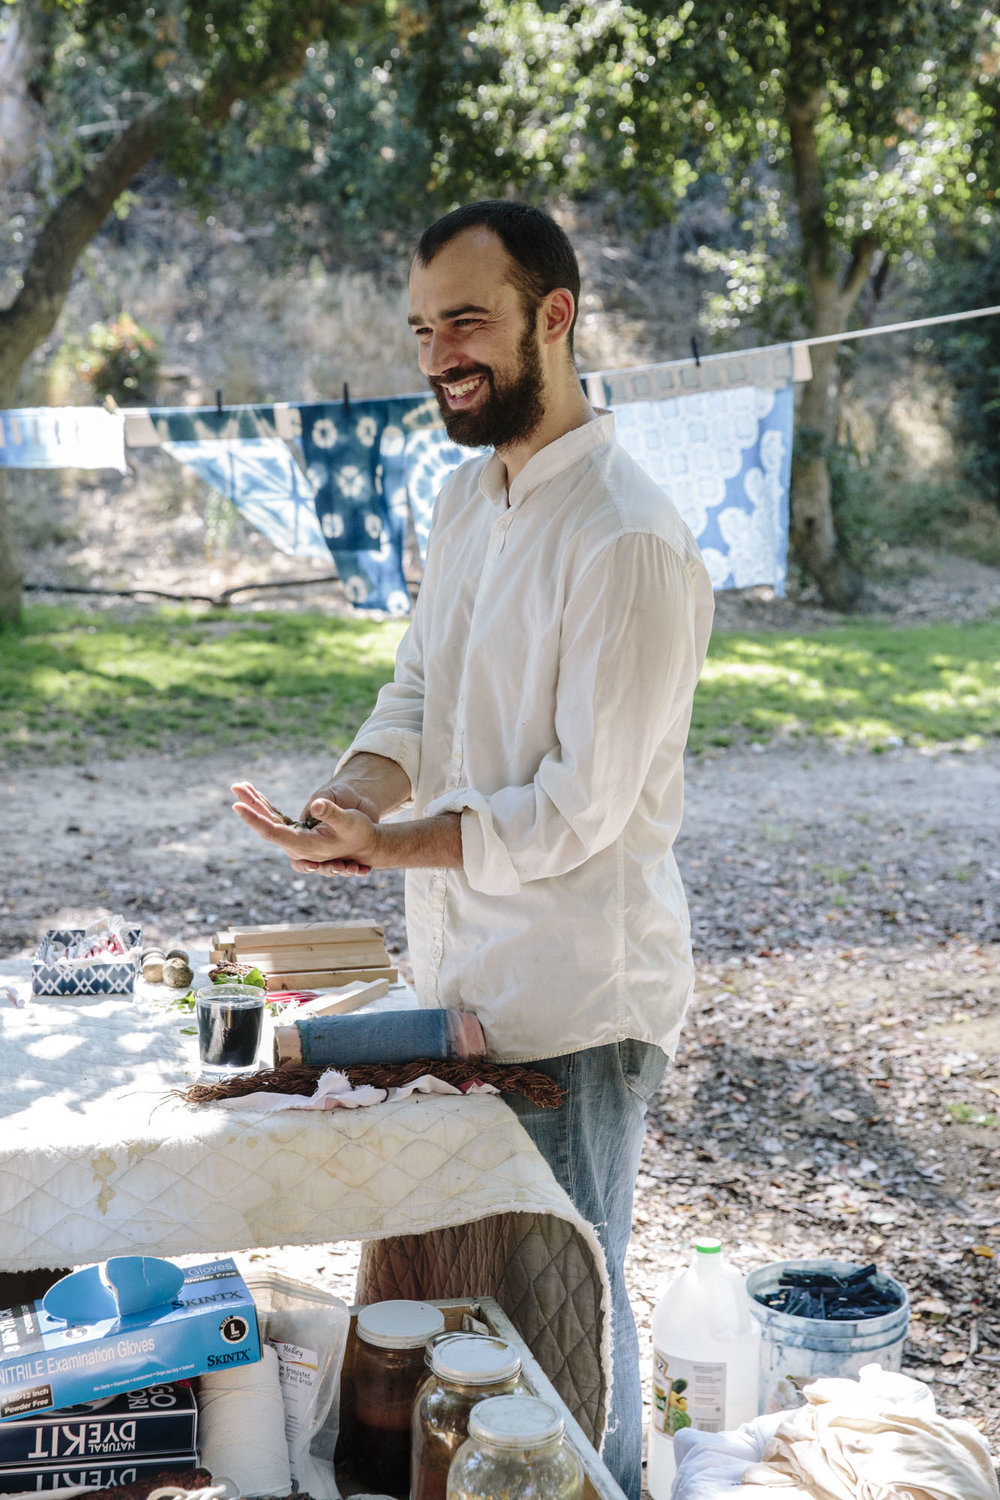 Graham Keegan Showing Indigo Extraction Outdoor Workshop.jpg